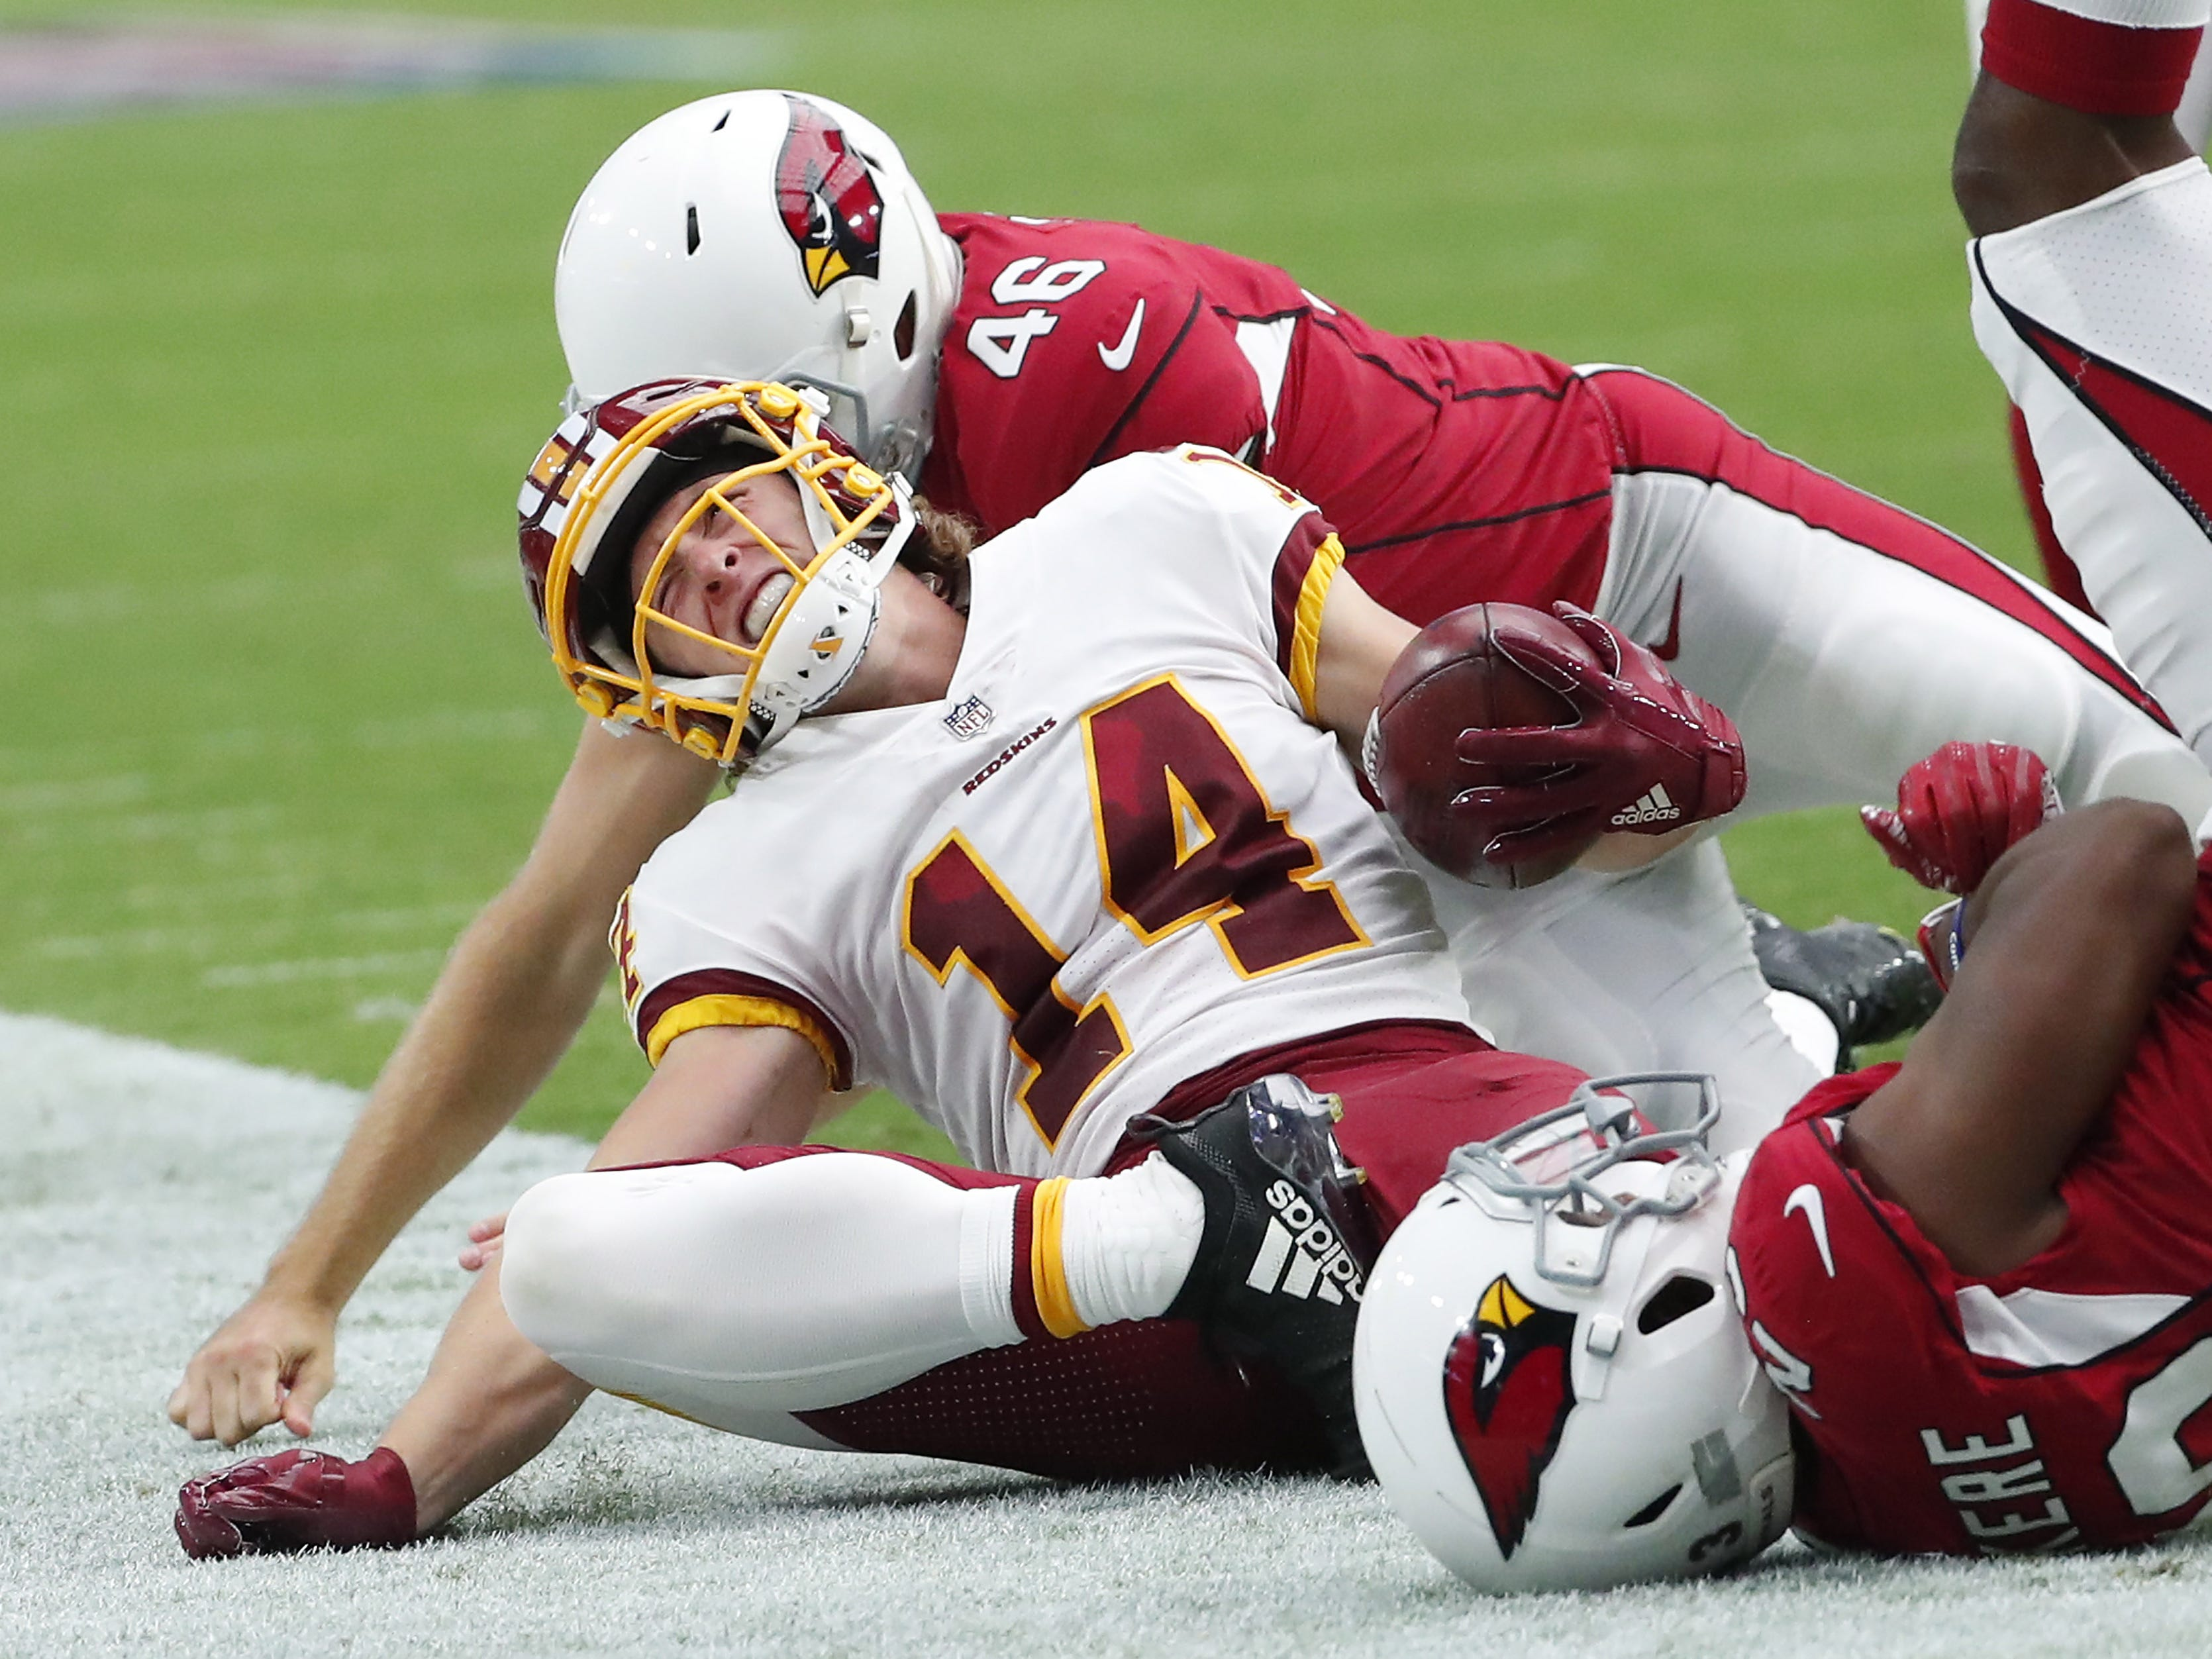 Washington Redskins punt returner Trey Quinn (14) gets injured during a return against the Arizona Cardinals during the third quarter at State Farm Stadium in Glendale, Ariz. September 9. 2018.